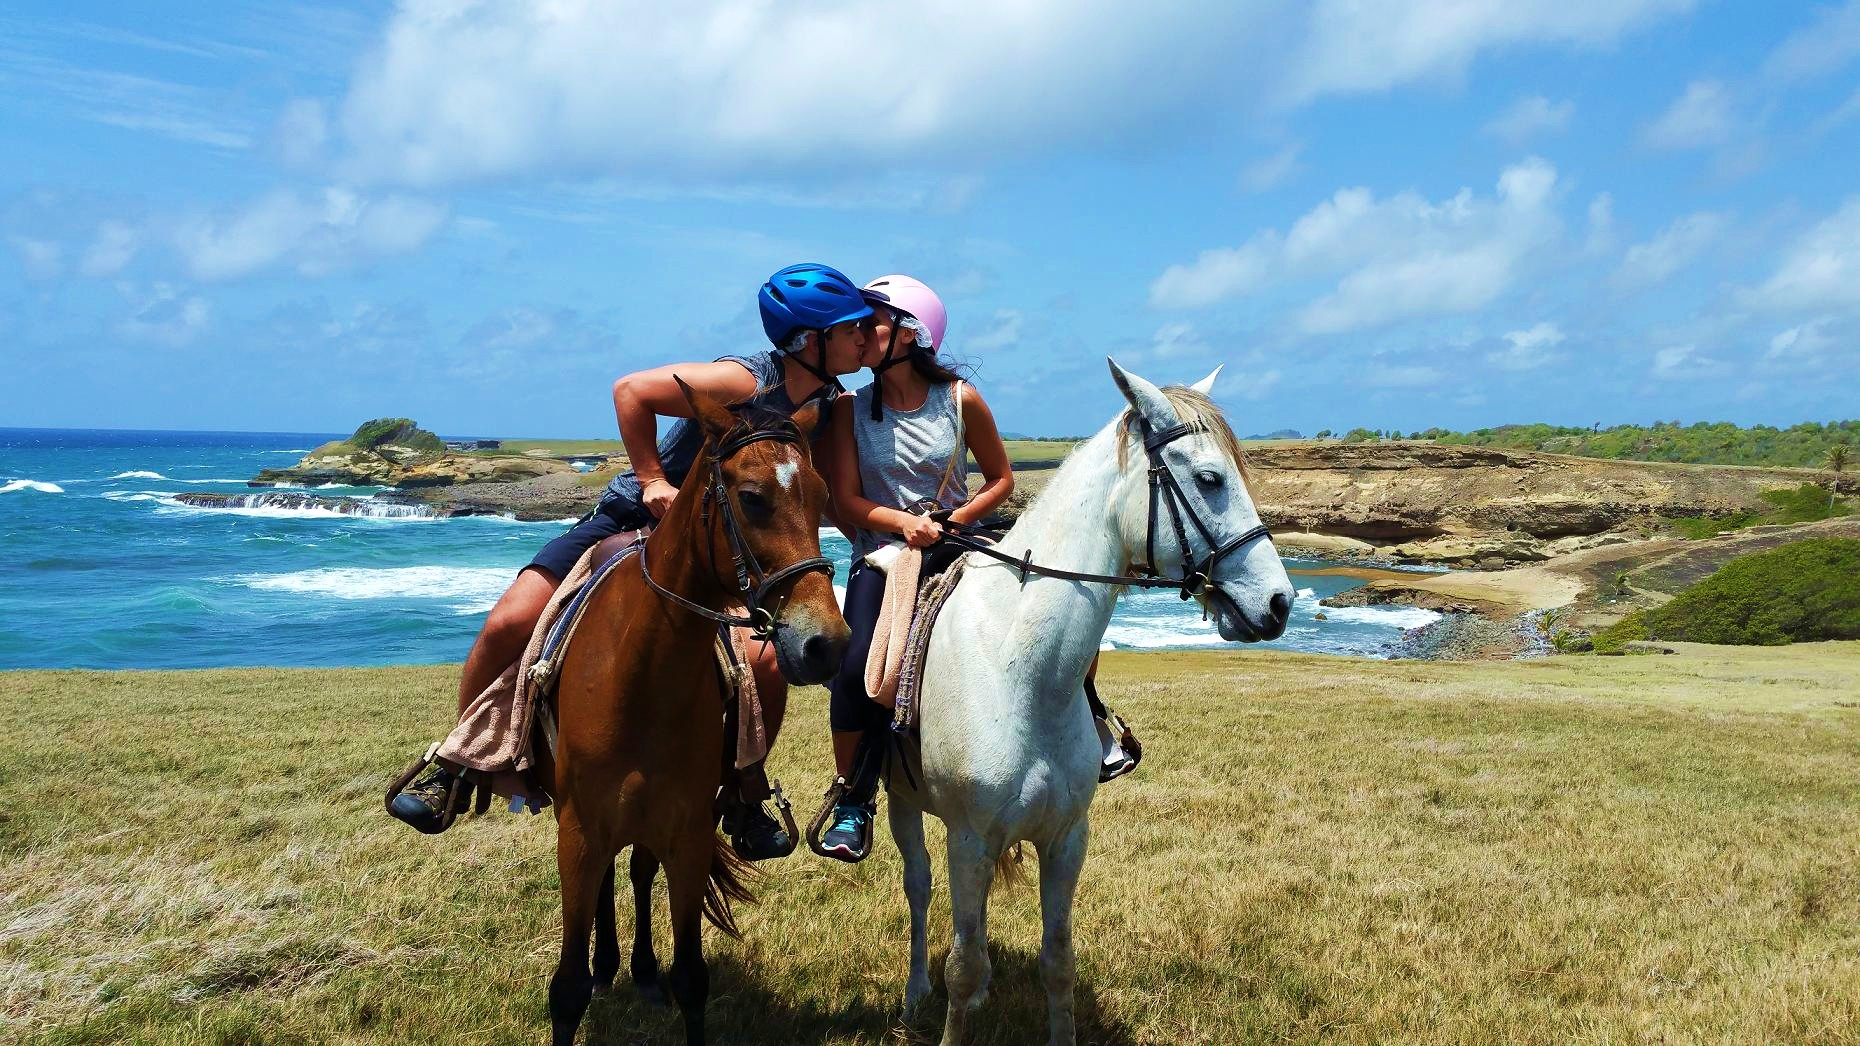 Many have dreamed of riding a horse on the beach or in the ...